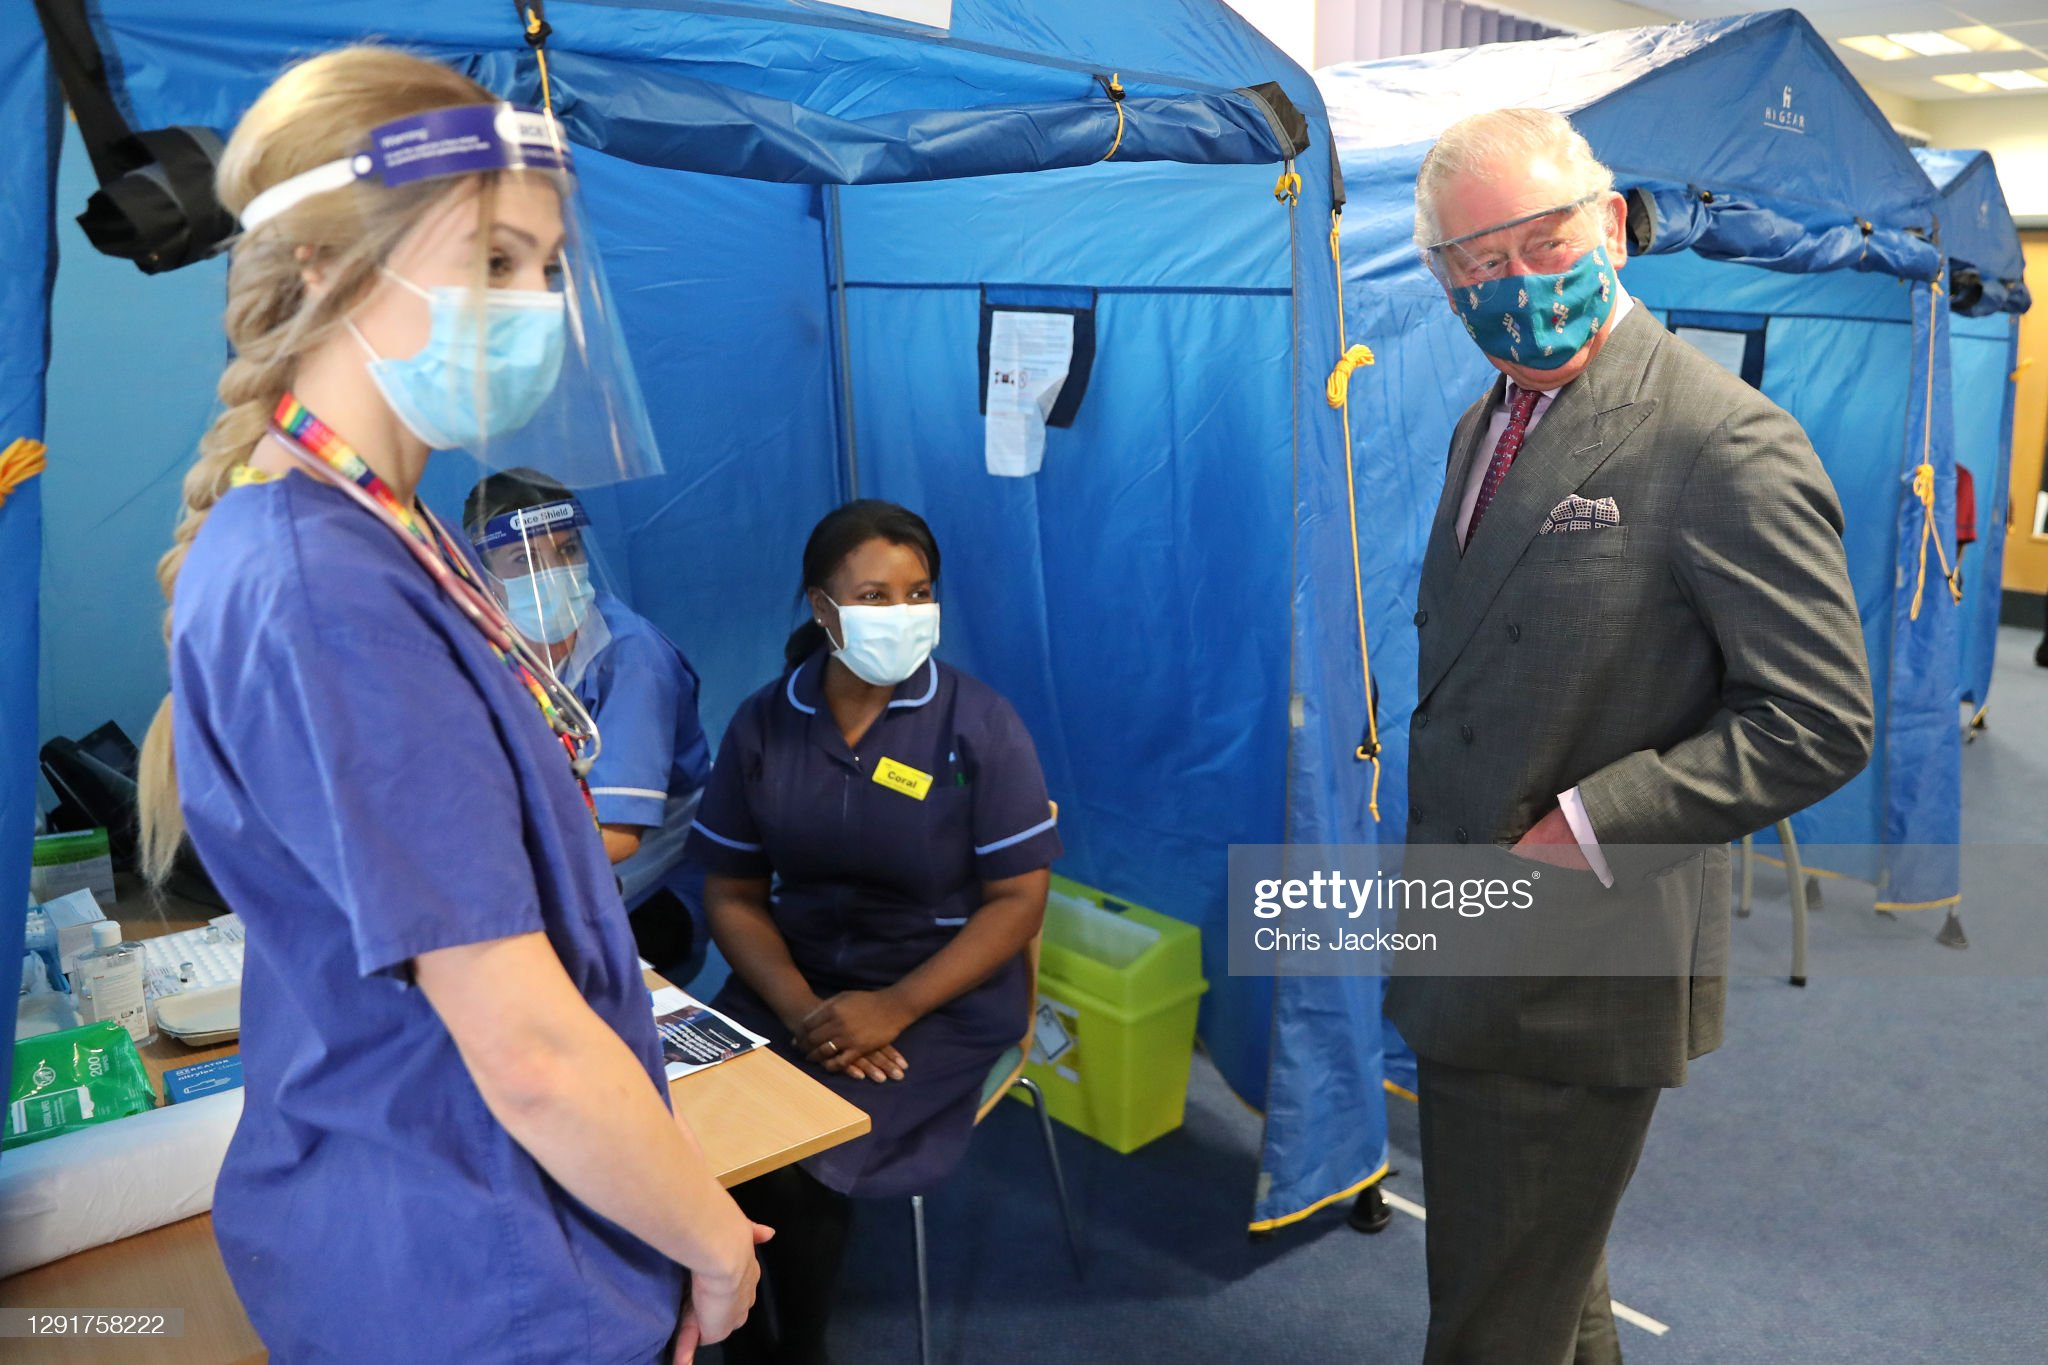 prince-charles-prince-of-wales-wears-a-facemask-and-protective-while-picture-id1291758222